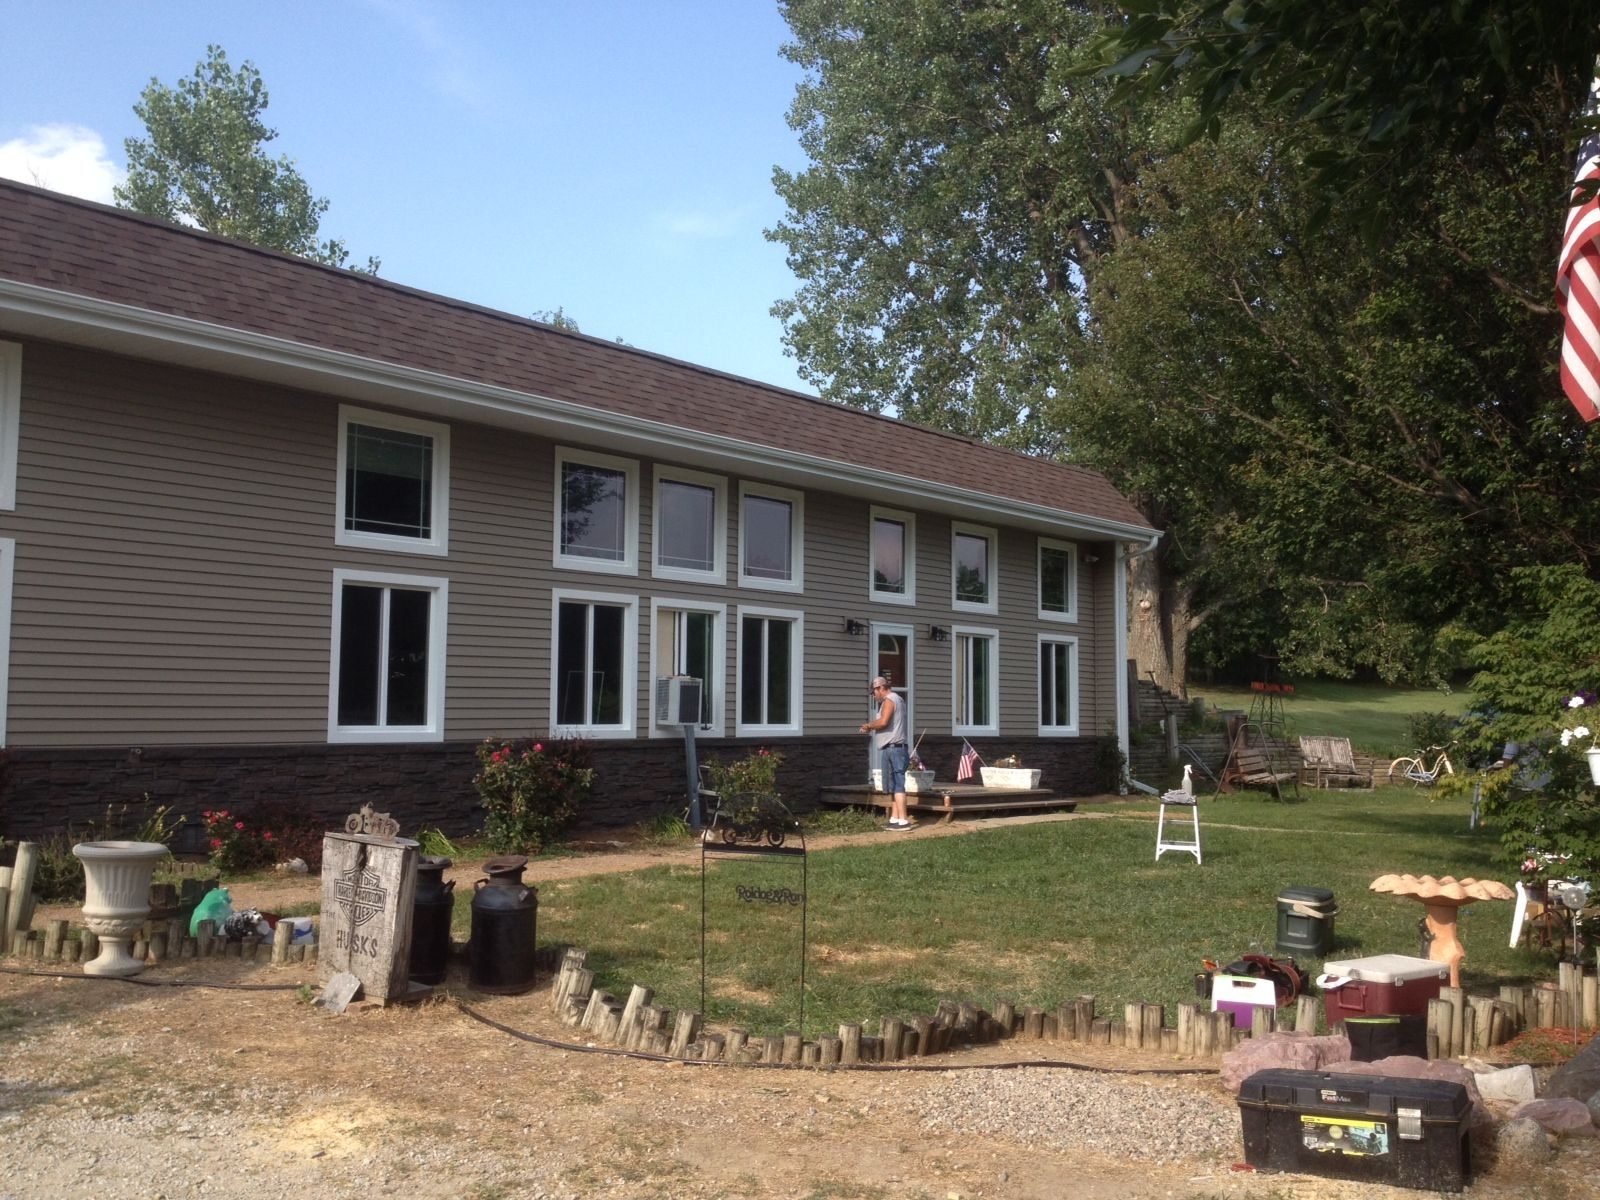 Check Out This Installation Of Mitten Brownstone Siding On One Of Our Customer S Homes What A Beautiful Improvemen Installing Siding House Exterior Brownstone